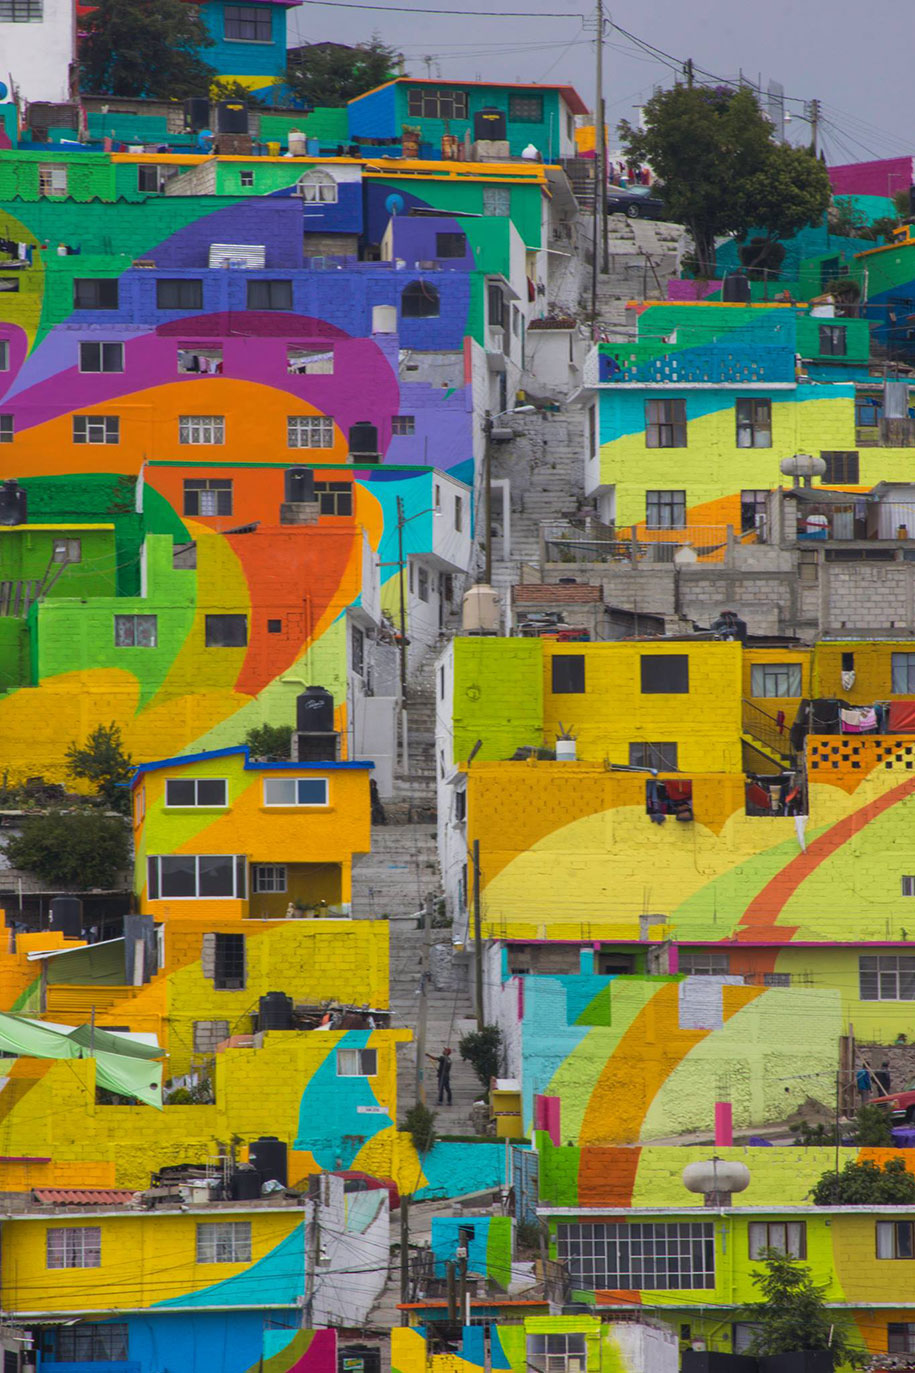 Mexican Government Let Street Artists Paint 200 Houses To